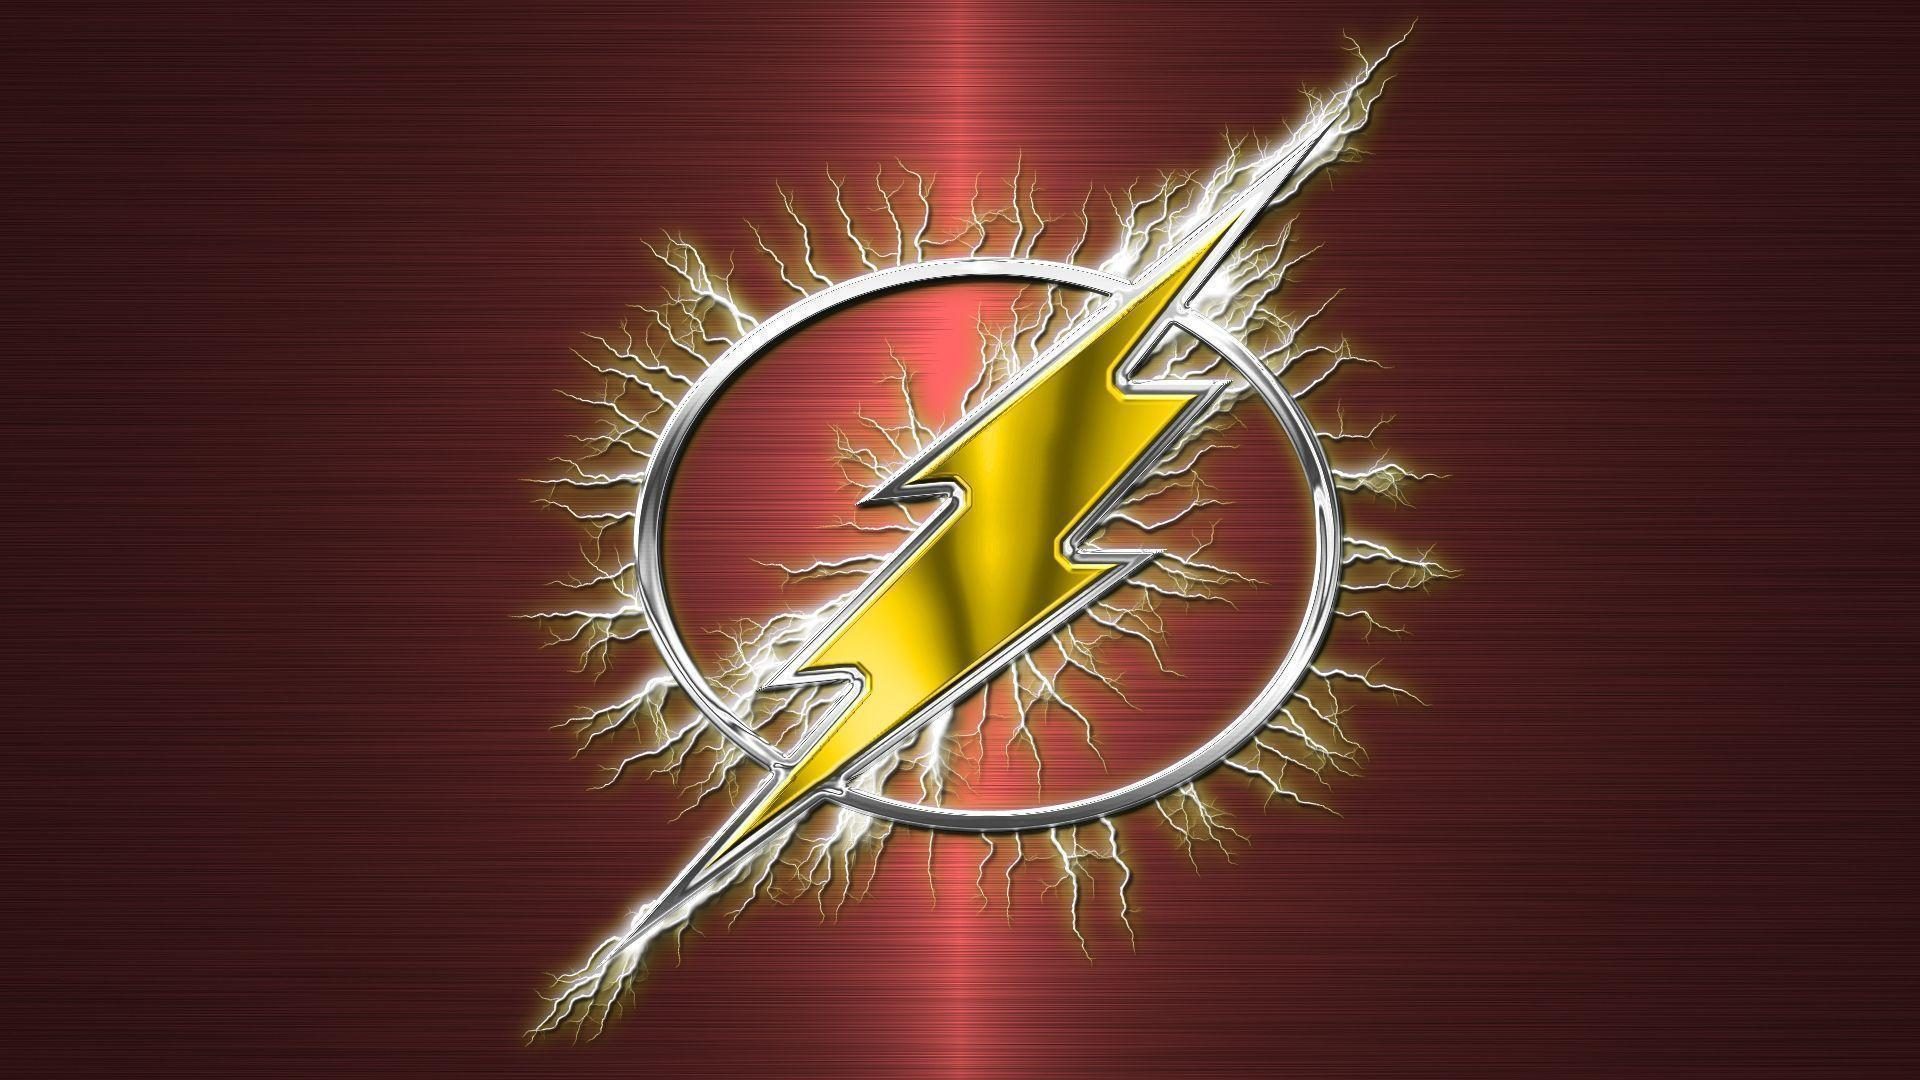 179 Flash HD Wallpapers